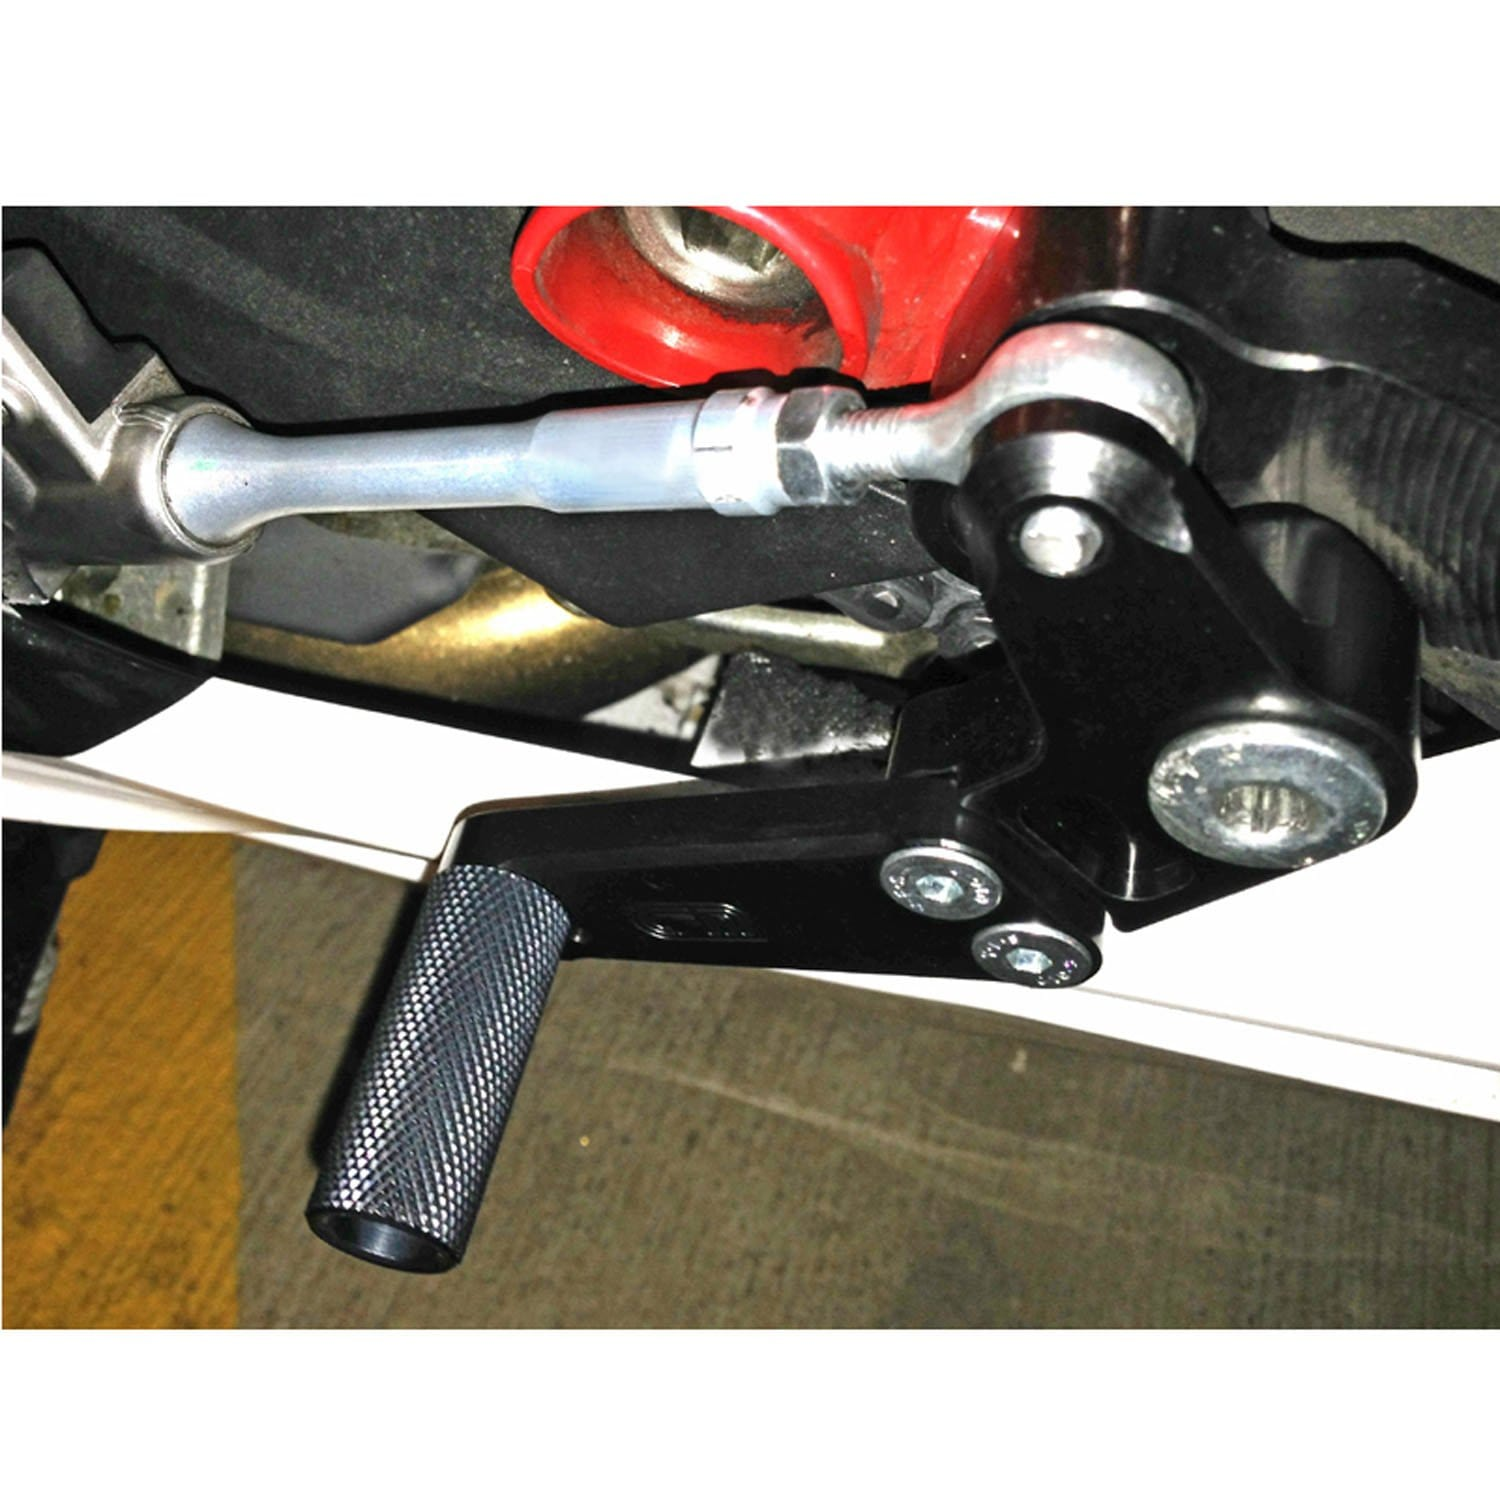 08-0641 Duc '11+ 1198SP, '12+ 848 Evo Complete Black GP Shift Pedal Assembly (factory QS) - Woodcraft Technologies - Motorcycle Parts